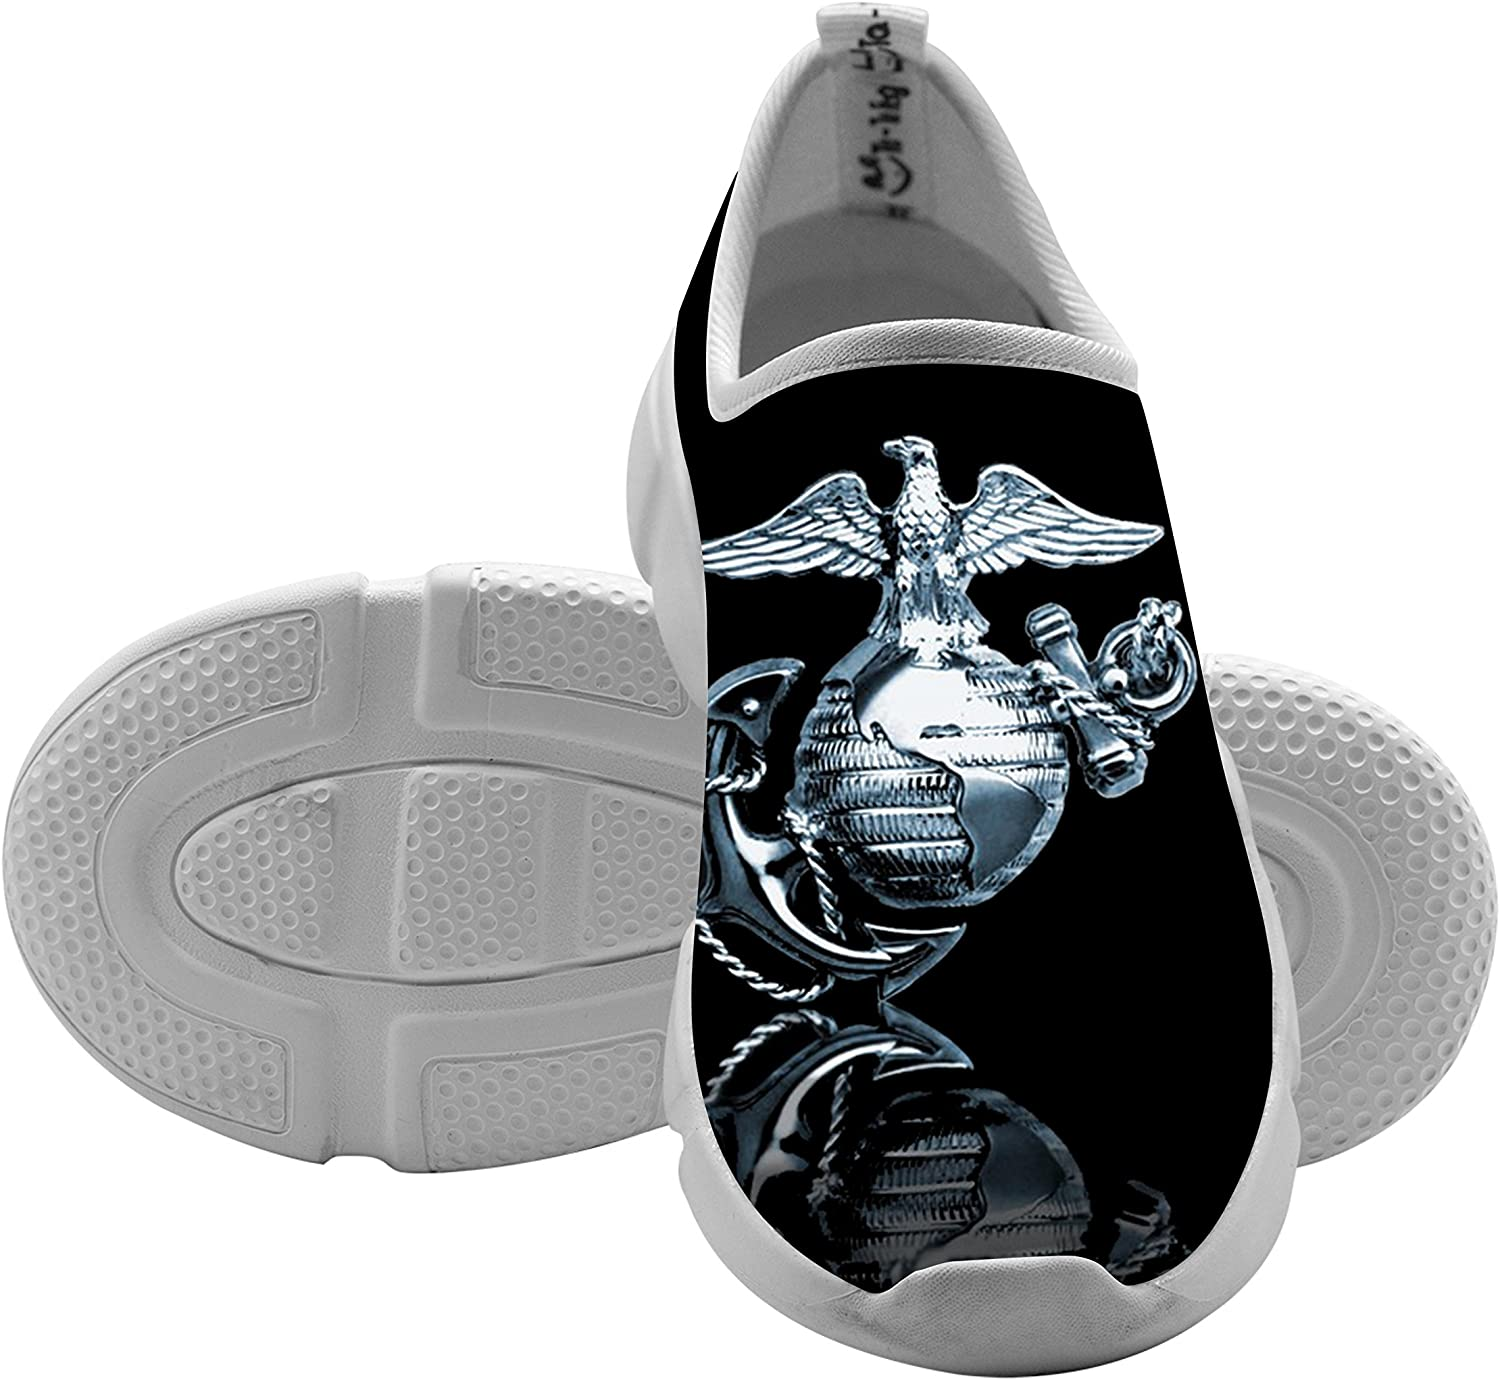 Kids USMC Shallow Leisure Shoes By SBR For Boys/&Girls